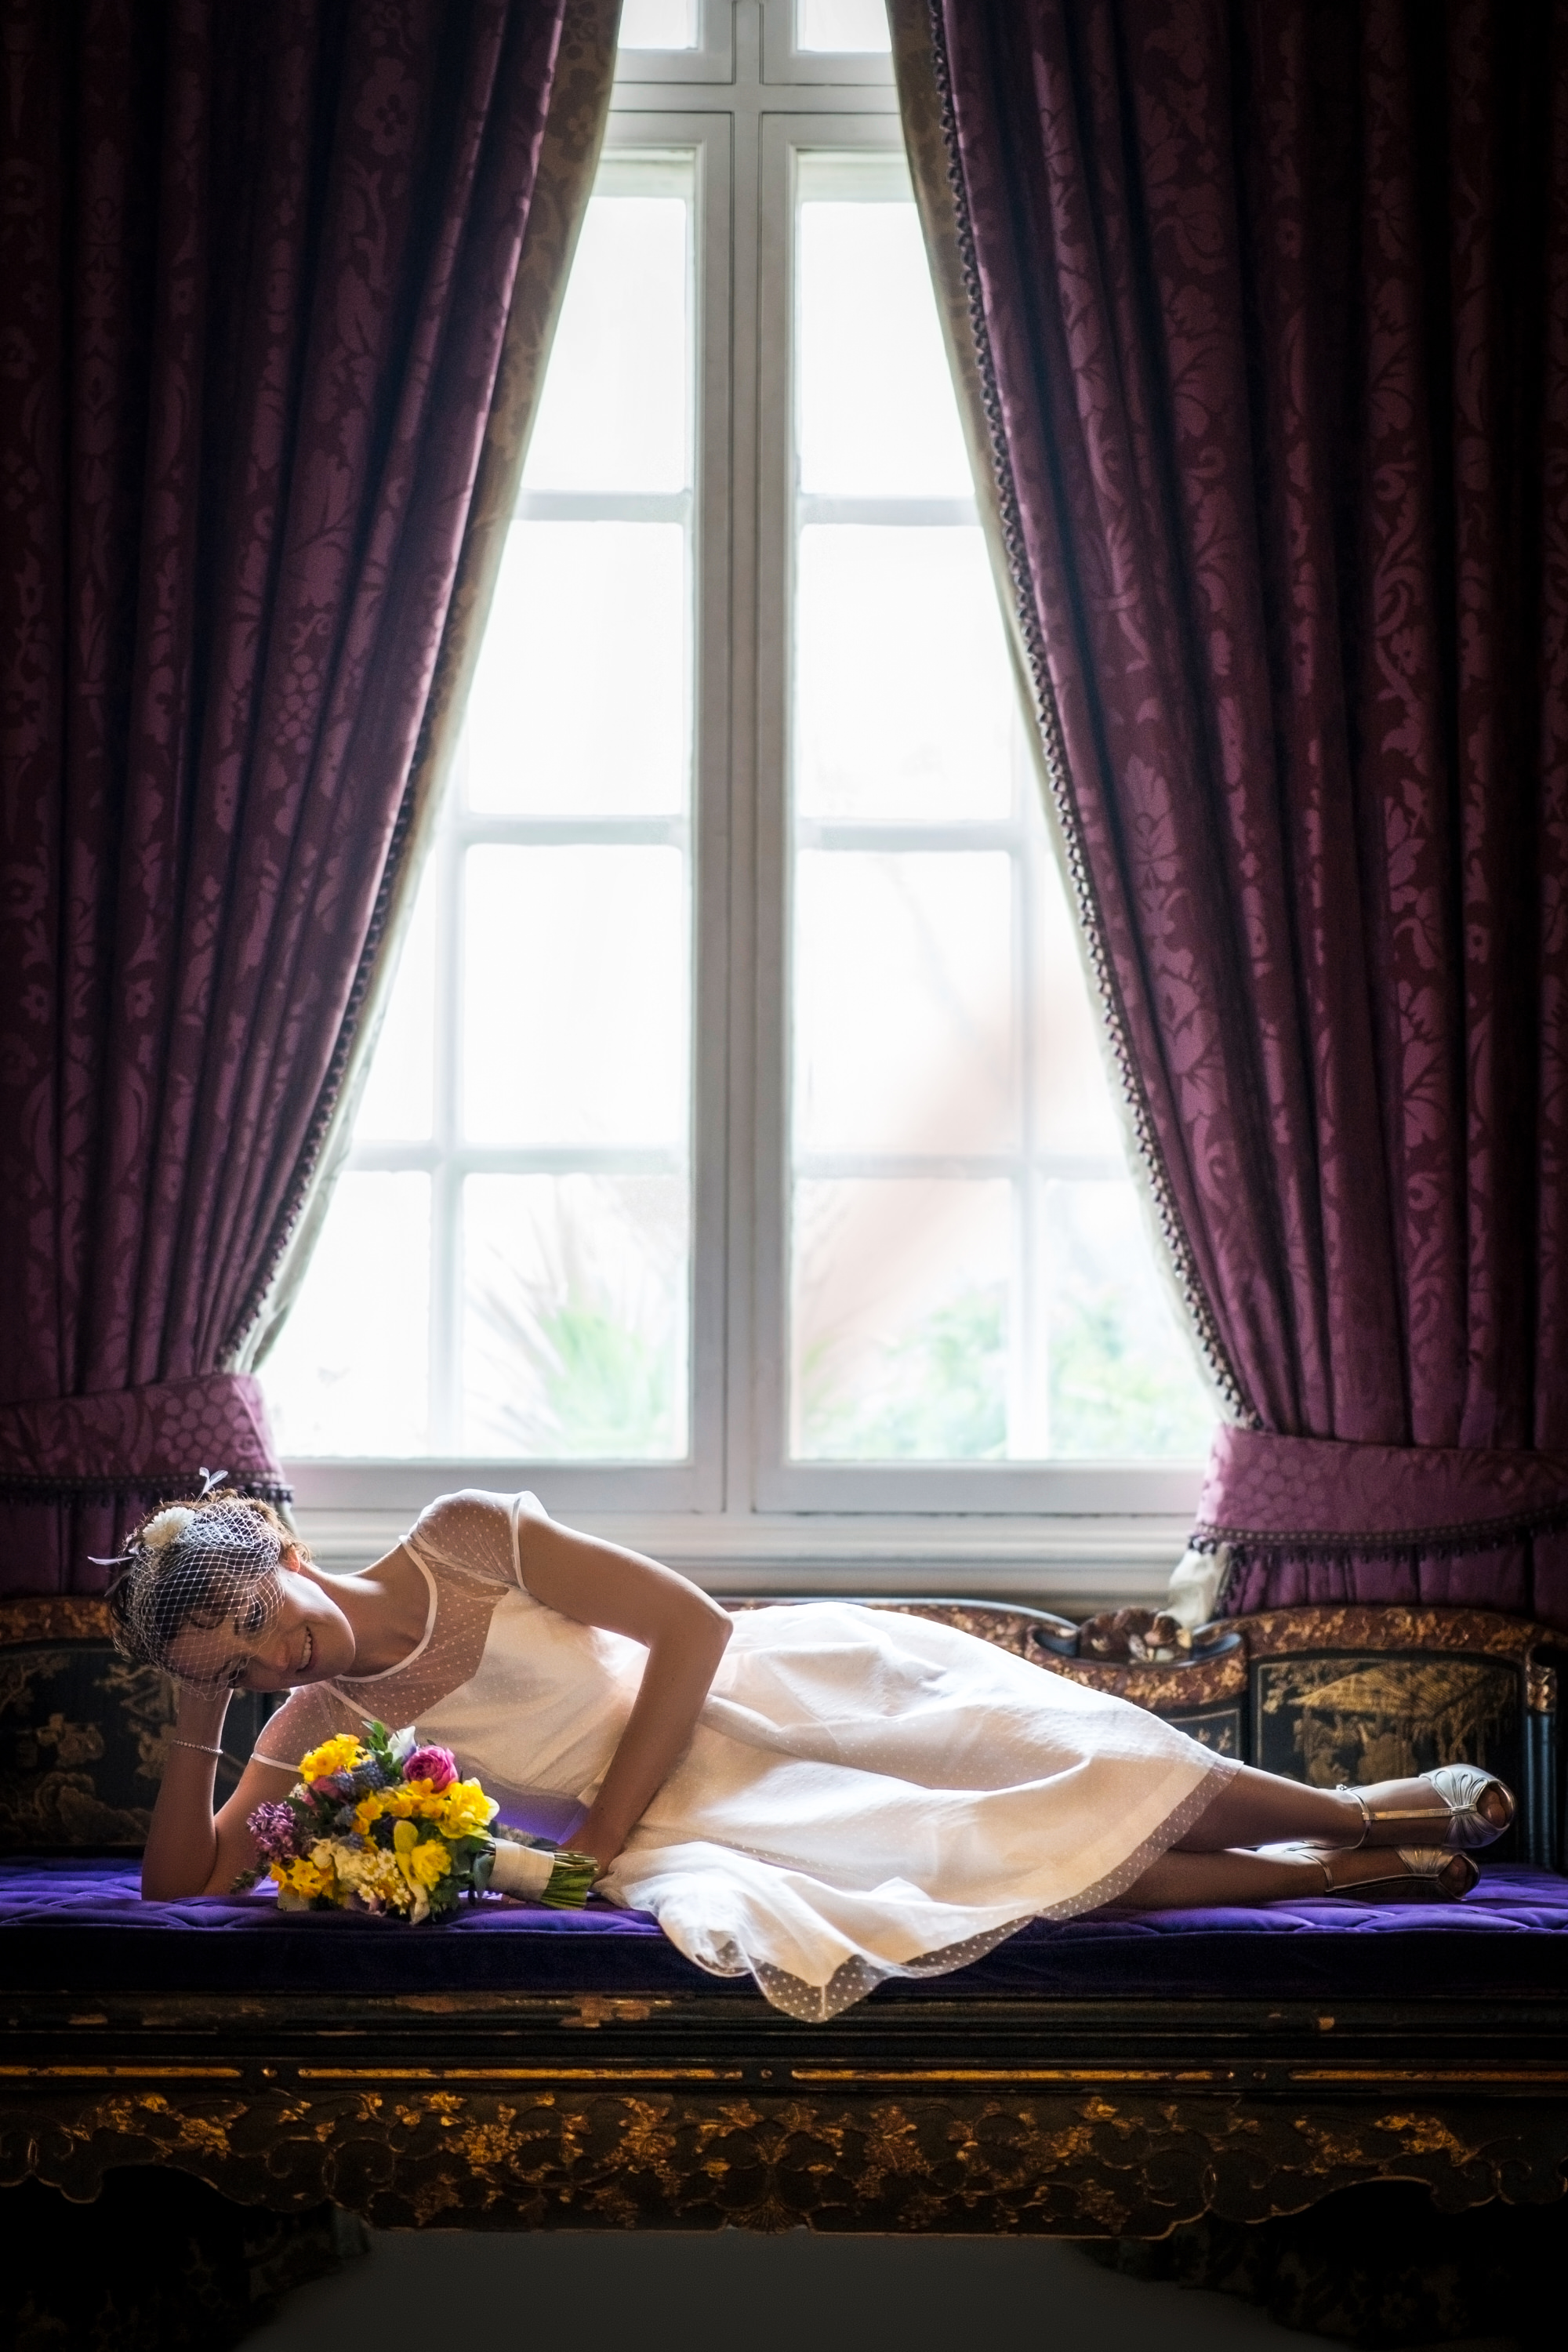 Why Choose The RoseateReading? - The beautifully restored Edwardian listed mansion is majestic in person, offering exclusive accommodation, stunning event rooms fine cuisine and of course, the perfect location to say 'I Do'. There's simply no other place quite like it in the UK.